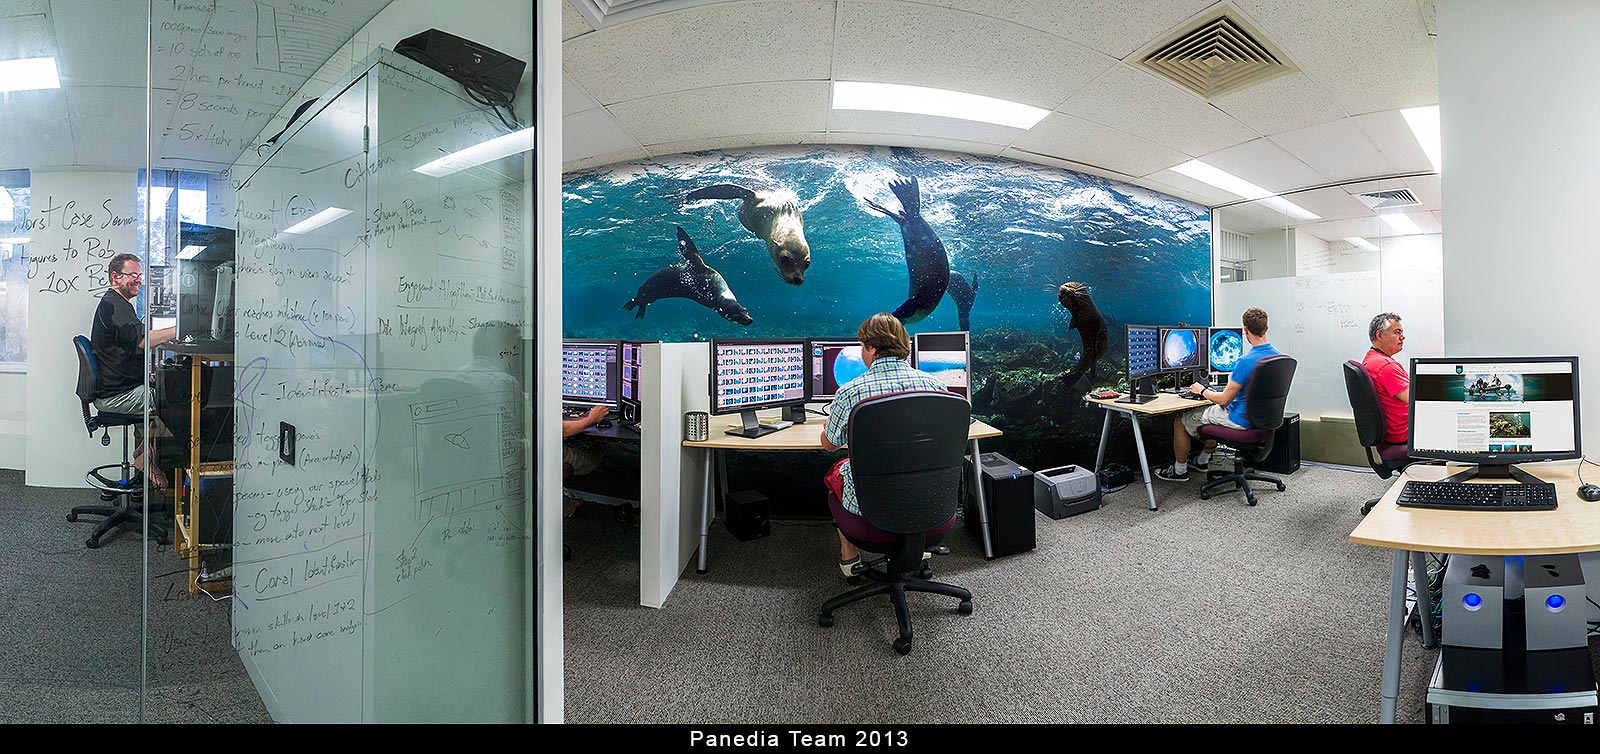 The Panedia Team working on the Google Oceans Streetview circa 2013